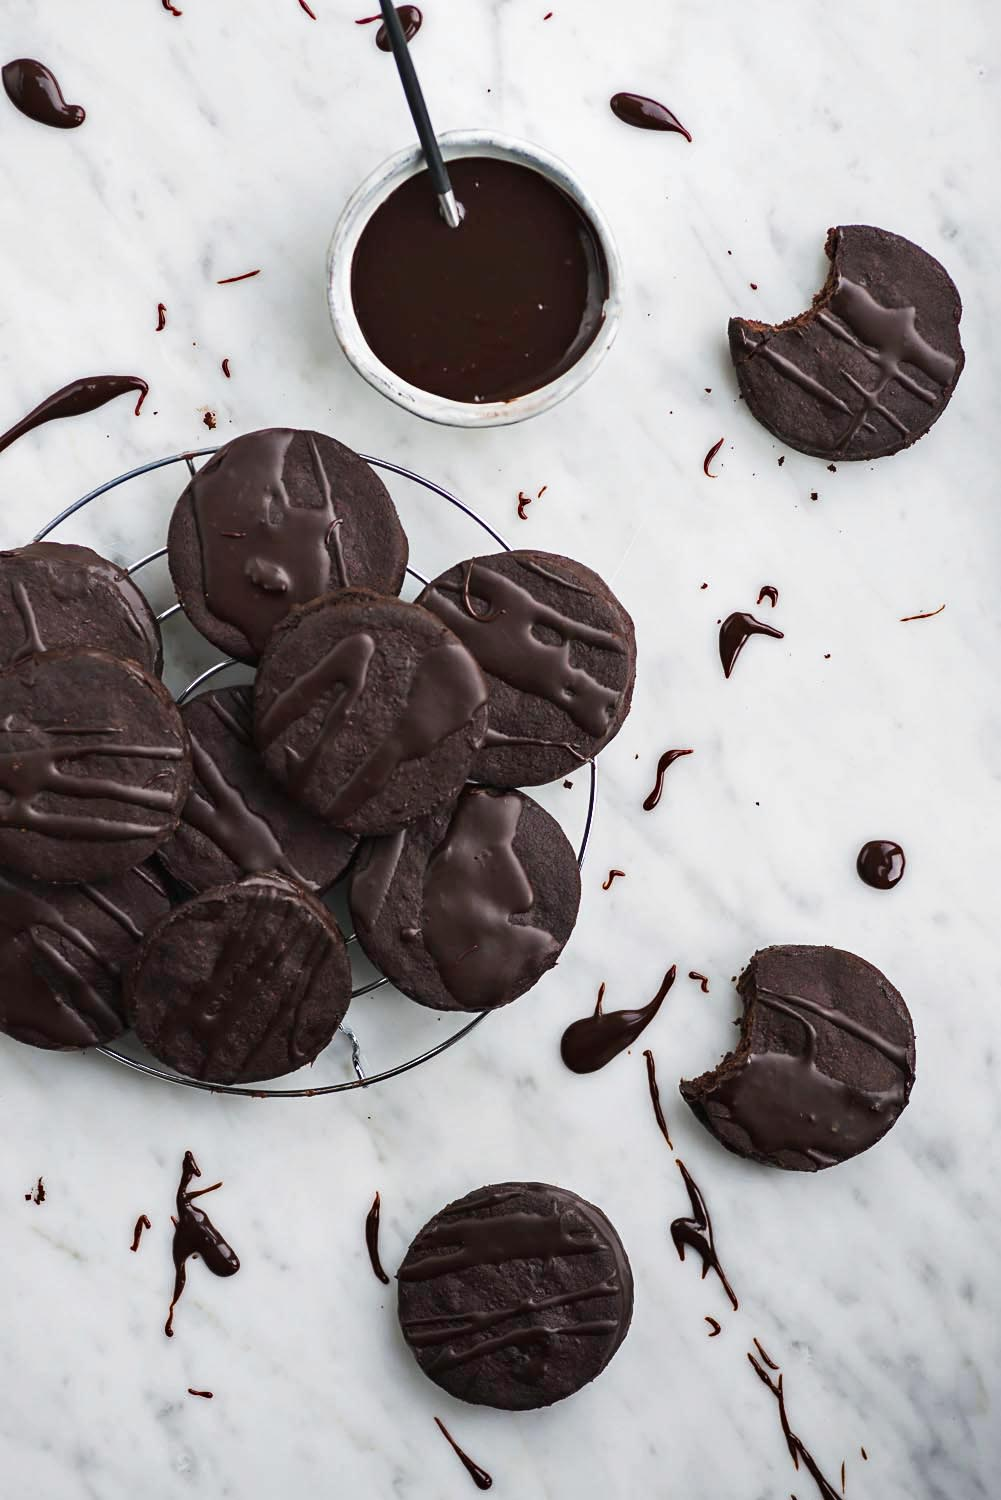 Chocolate 'O' Cookie Recipe from SWEET cookbook by Yotam Ottolenghi and Helen Goh